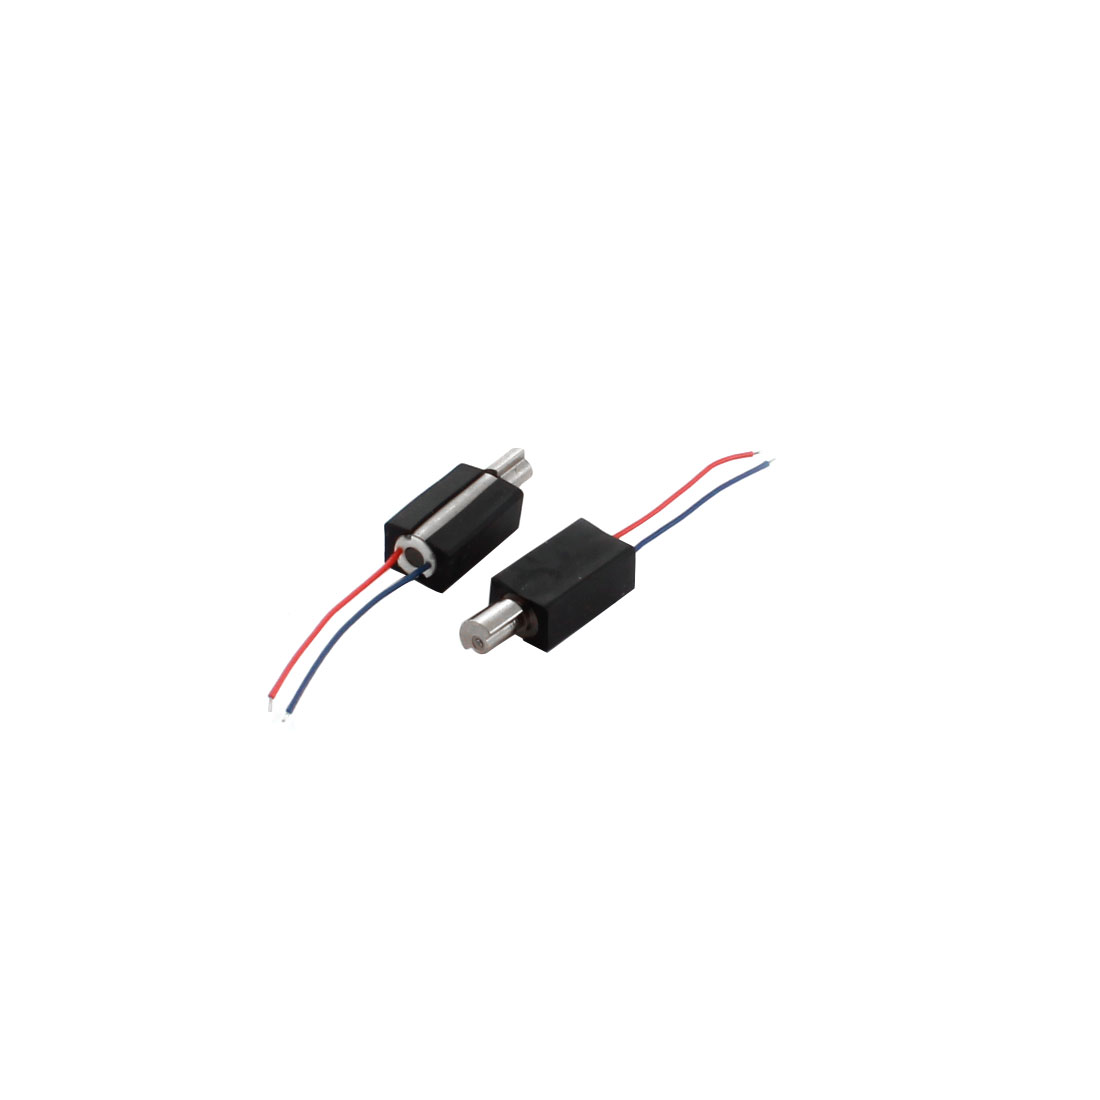 2Pcs DC 3V 1000RPM Micro Coreless Vibrating Motor for Model Aircraft PDAs